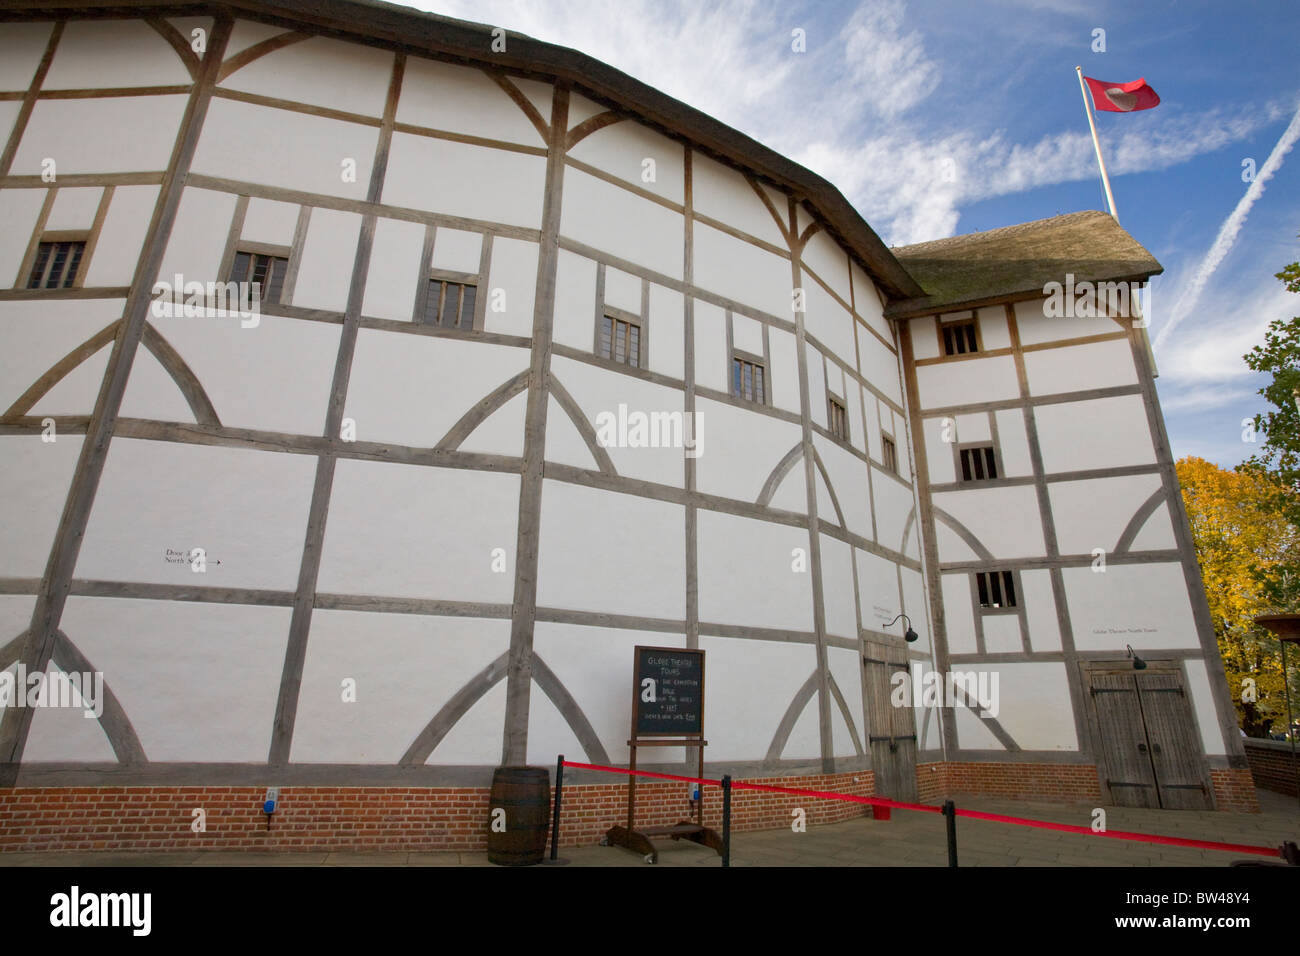 Shakespeare's Globe, a reconstruction of the Globe Theatre, London - Stock Image